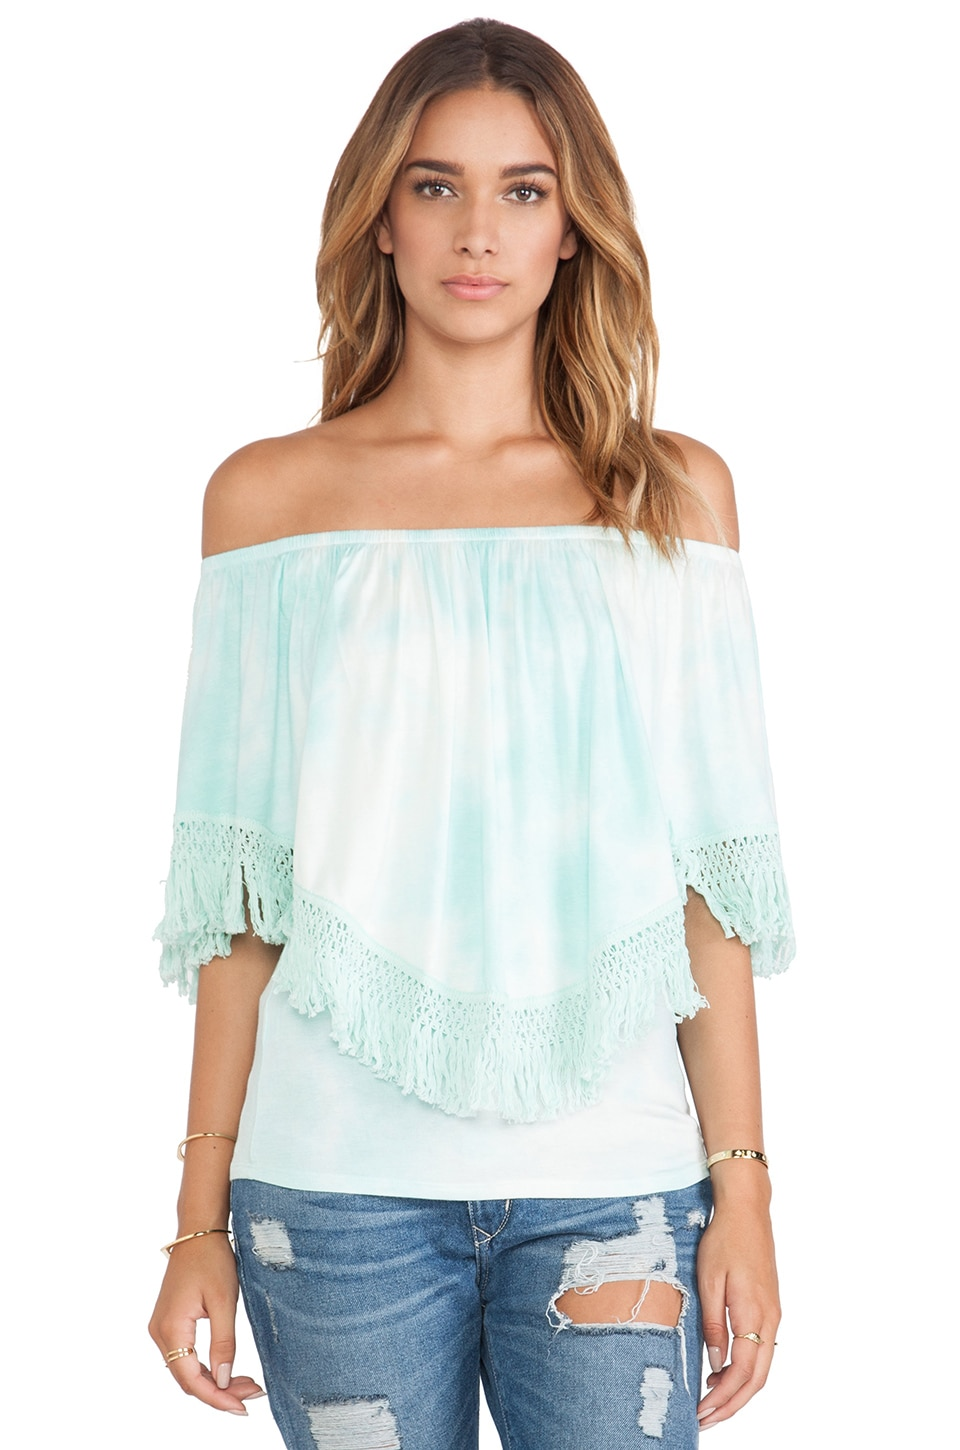 VAVA by Joy Han Mischa Convertible Top in Mint